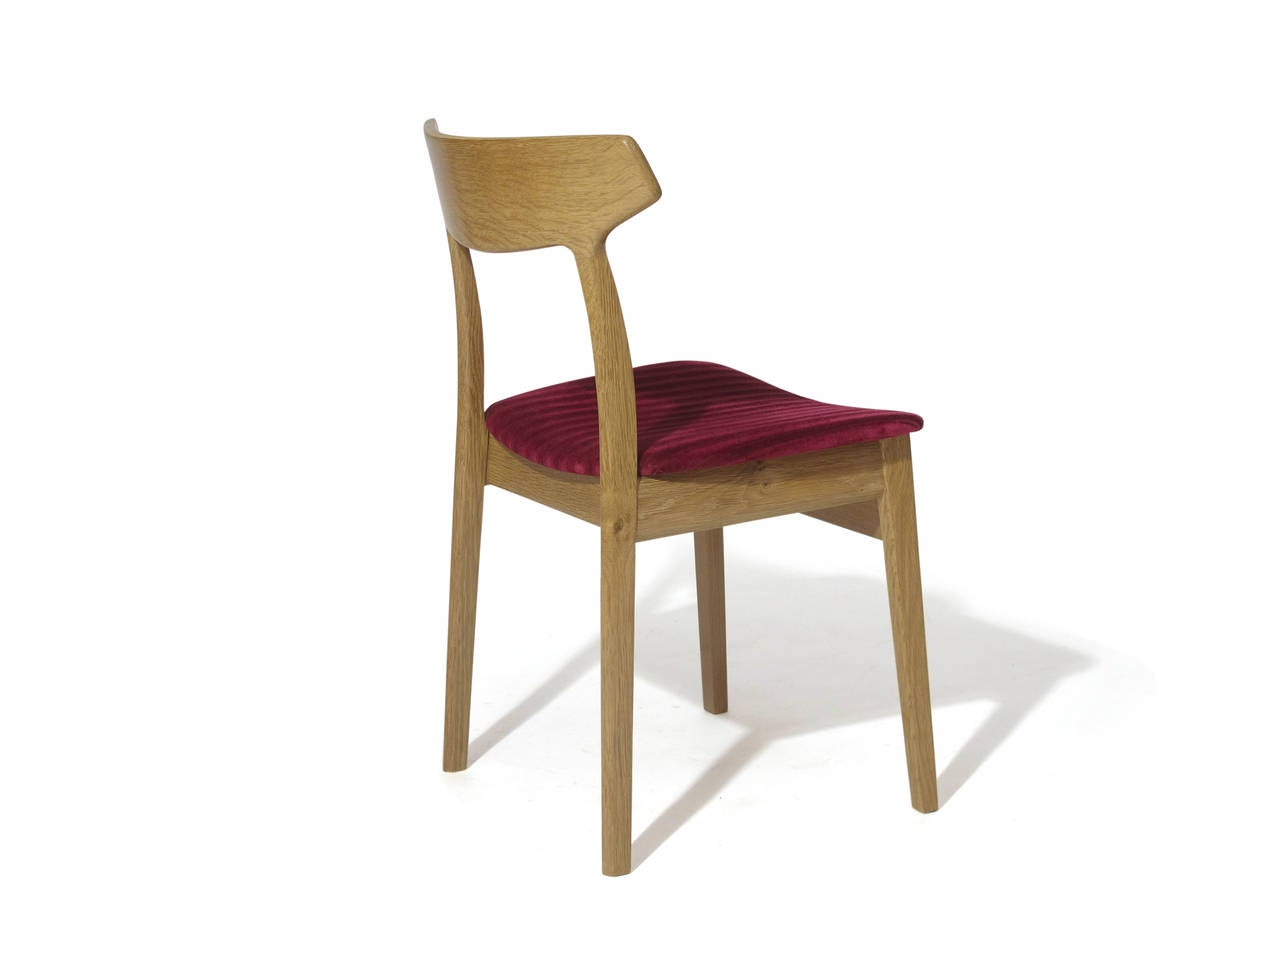 oak and white dining chairs steel chair malaysia henning kjærnulf danish for sale